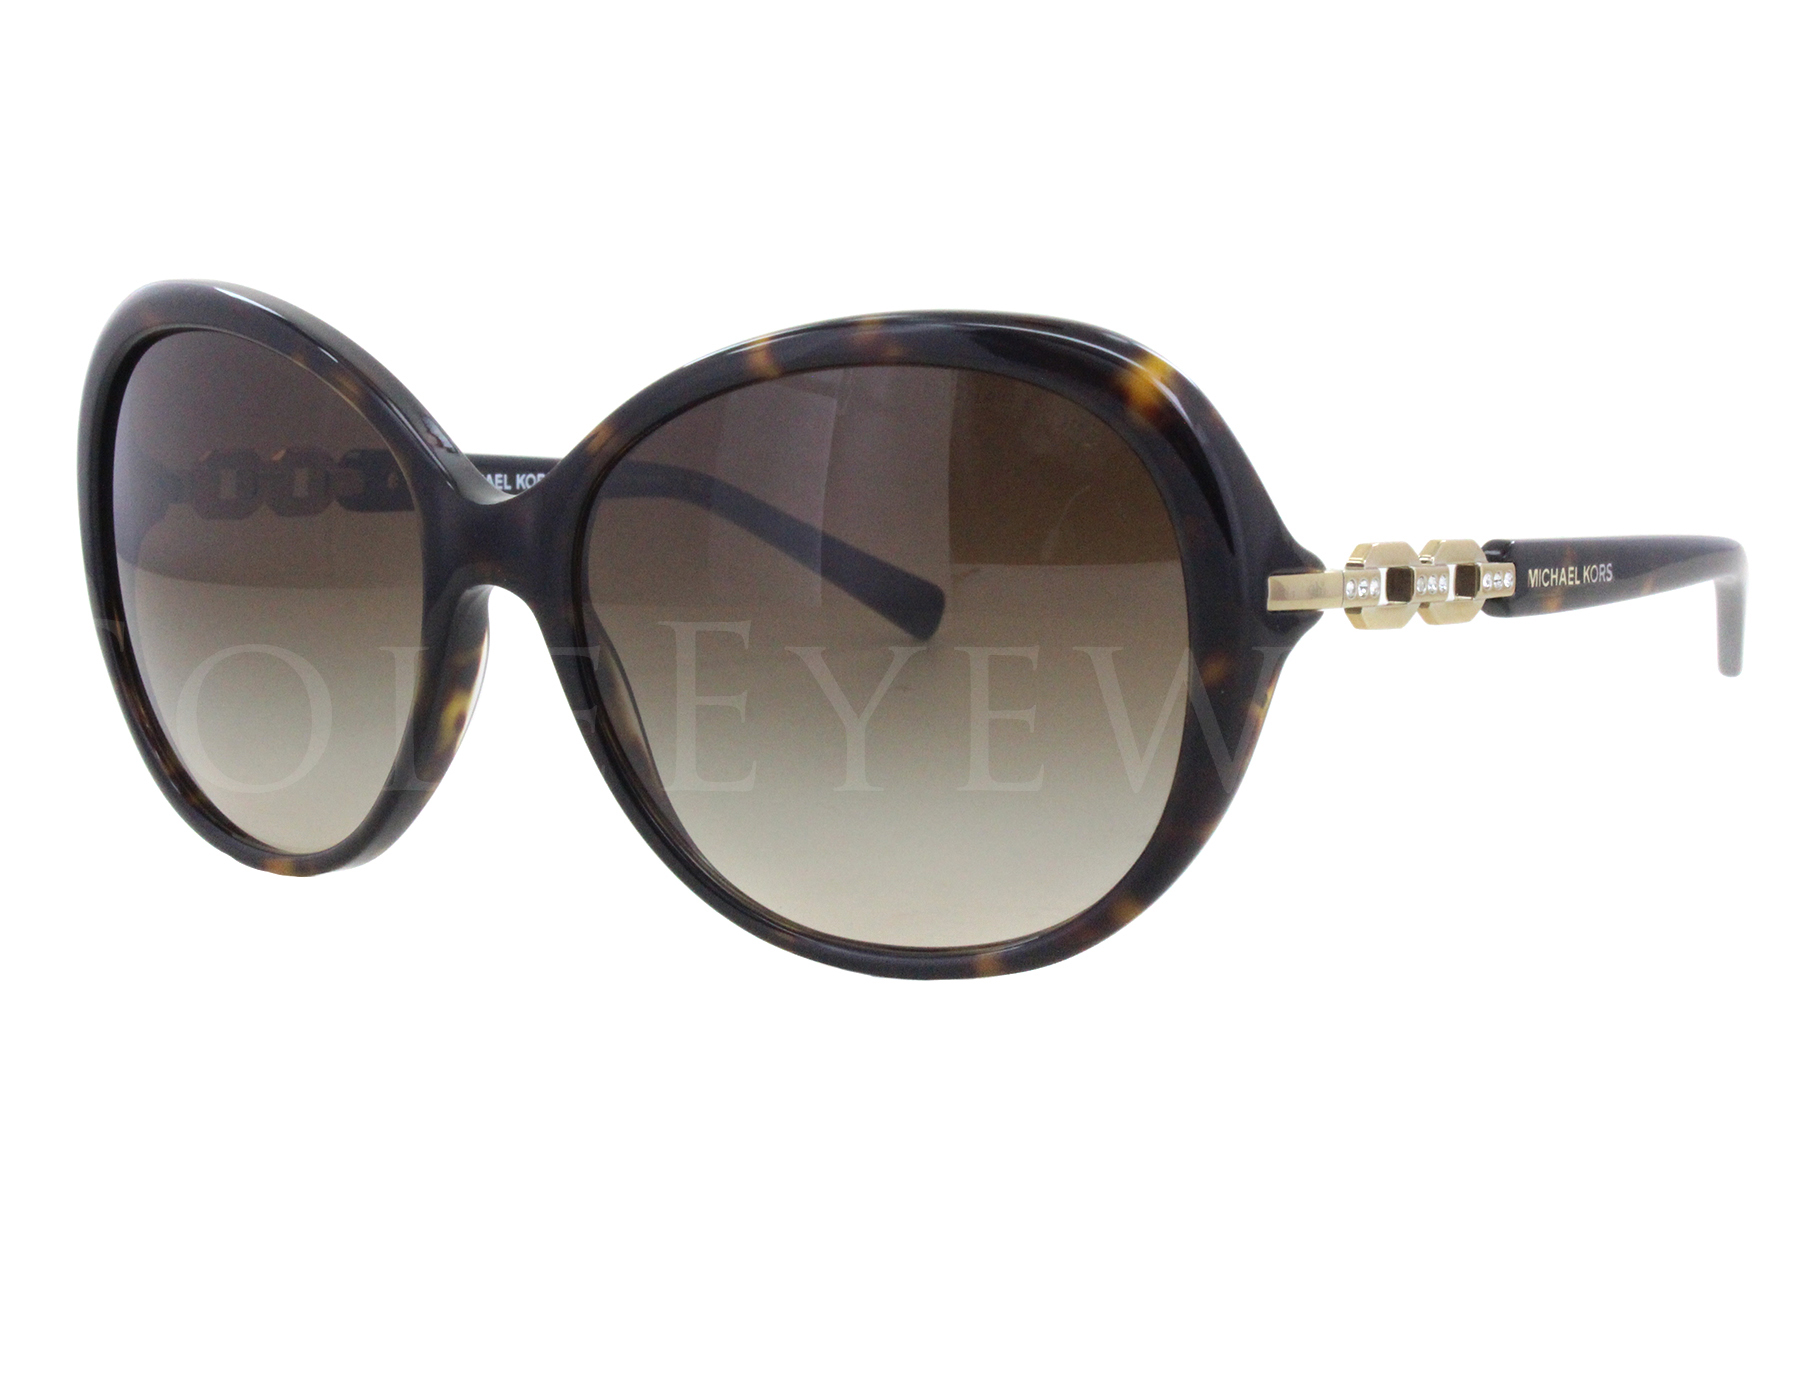 28234d1ada Details about NEW Michael Kors MK2008B 300613 Andorra Tortoise Brown  Gradient Sunglasses